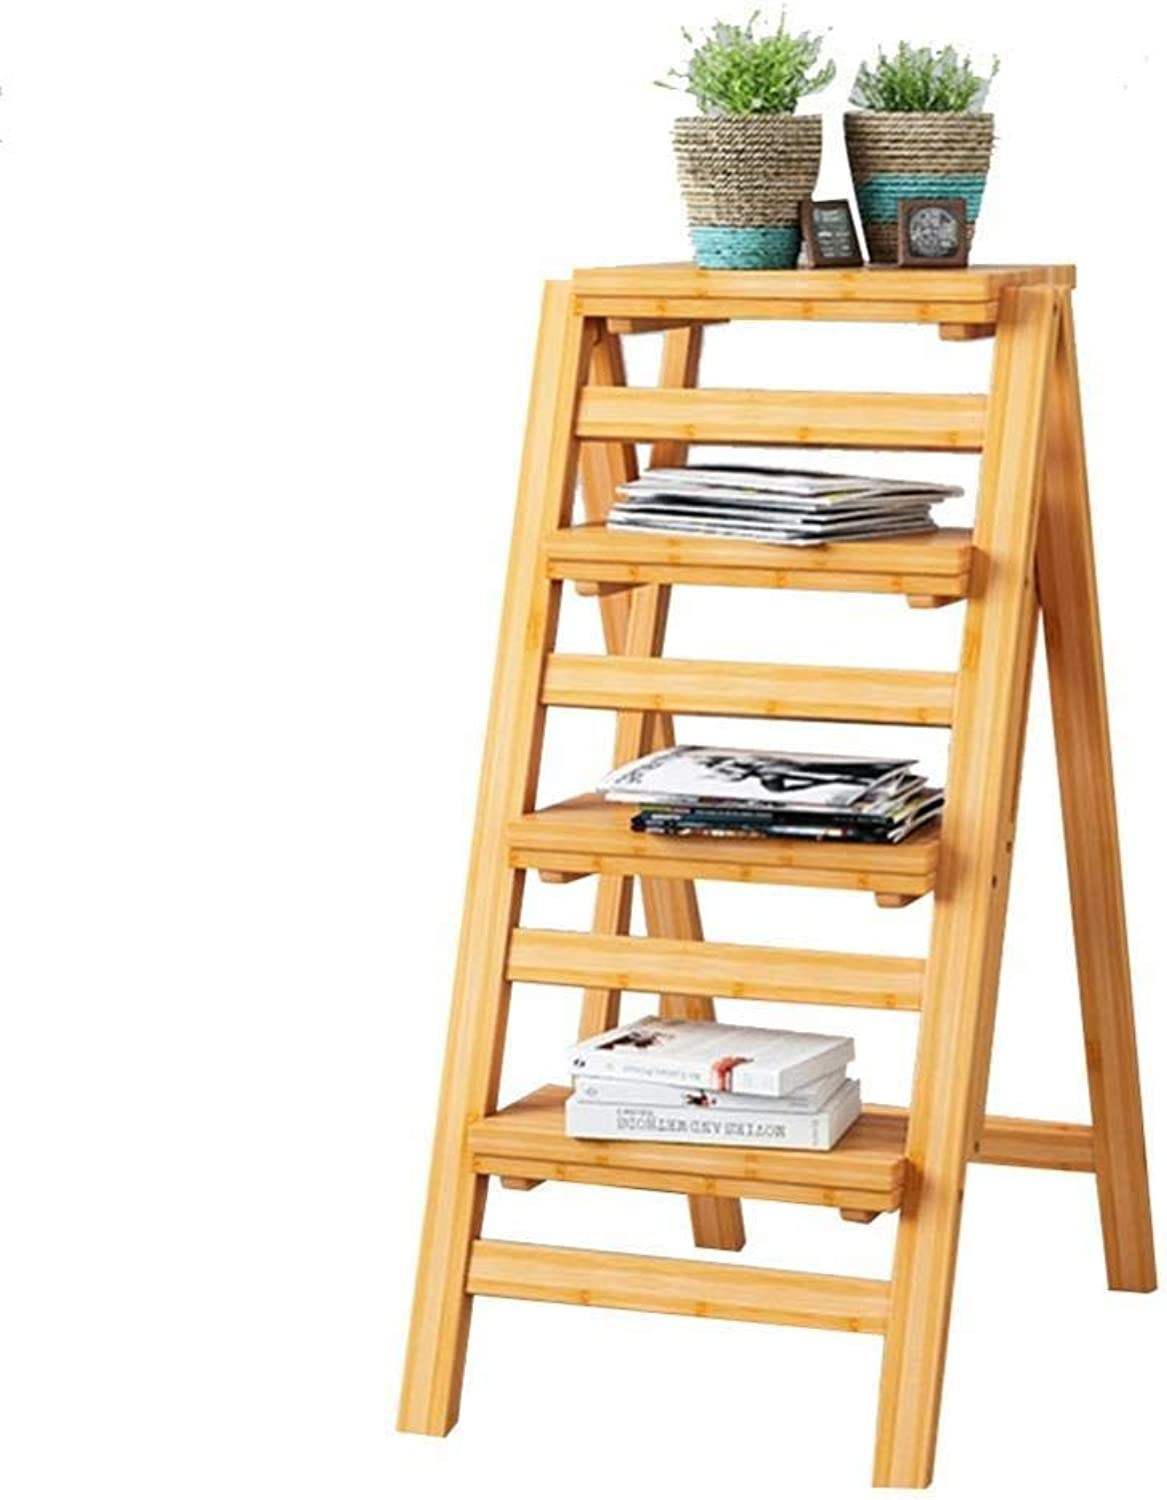 Costzon Folding Step Stool 3 Tier Wood Ladder Dark Nutbrown Folding Ladder Stools Stairs Multifunction Bar Stool Household Ascending Pedal Flower Stand Furniture (Size   4 Steps) (Size   4 Steps)